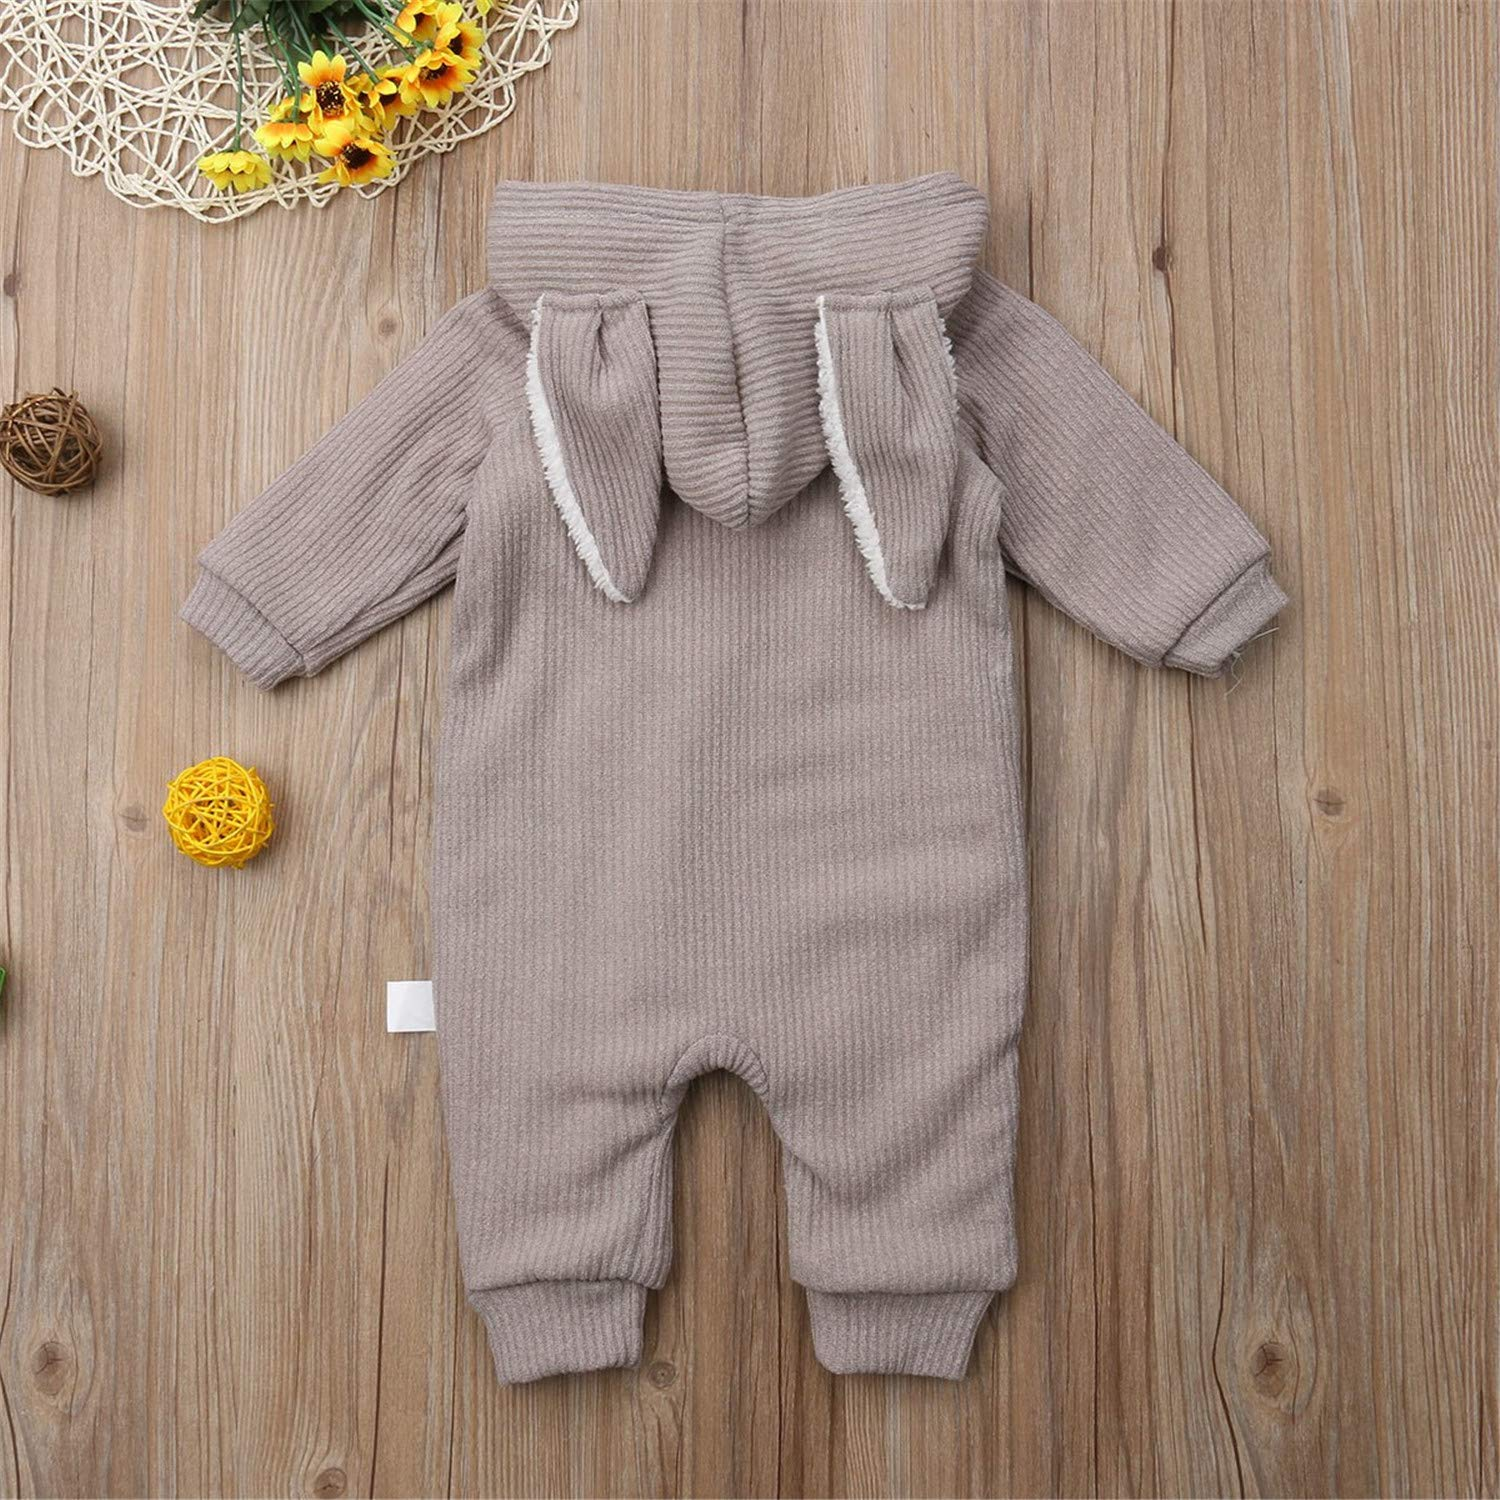 Sale Cute Newborn Baby Boy Girl Autumn Winter Clothes Long Sleeve Bunny Ear Hooded Romper Jumpsuit Warm Outfits Baby Clothing